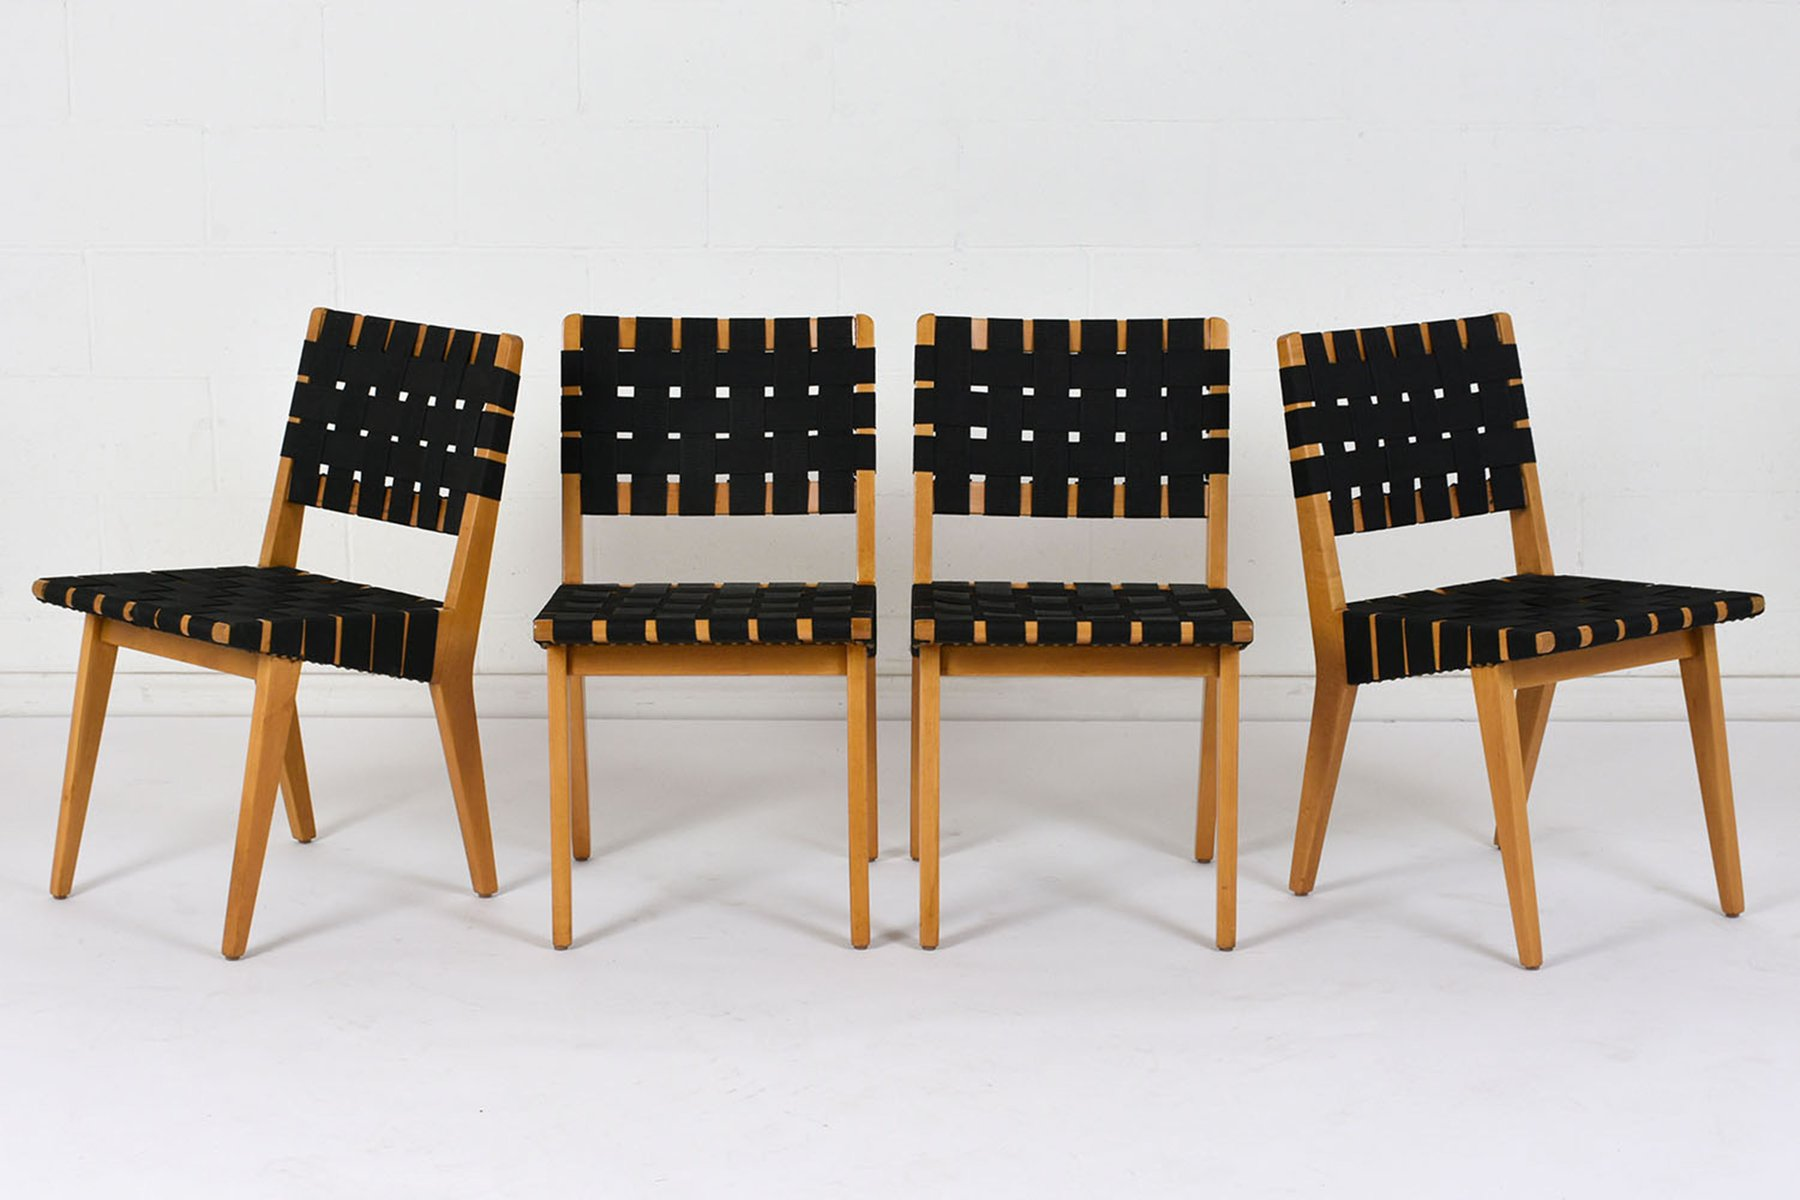 Mid century modern dining chairs set of 4 for sale at pamono for Designer dining chairs sale